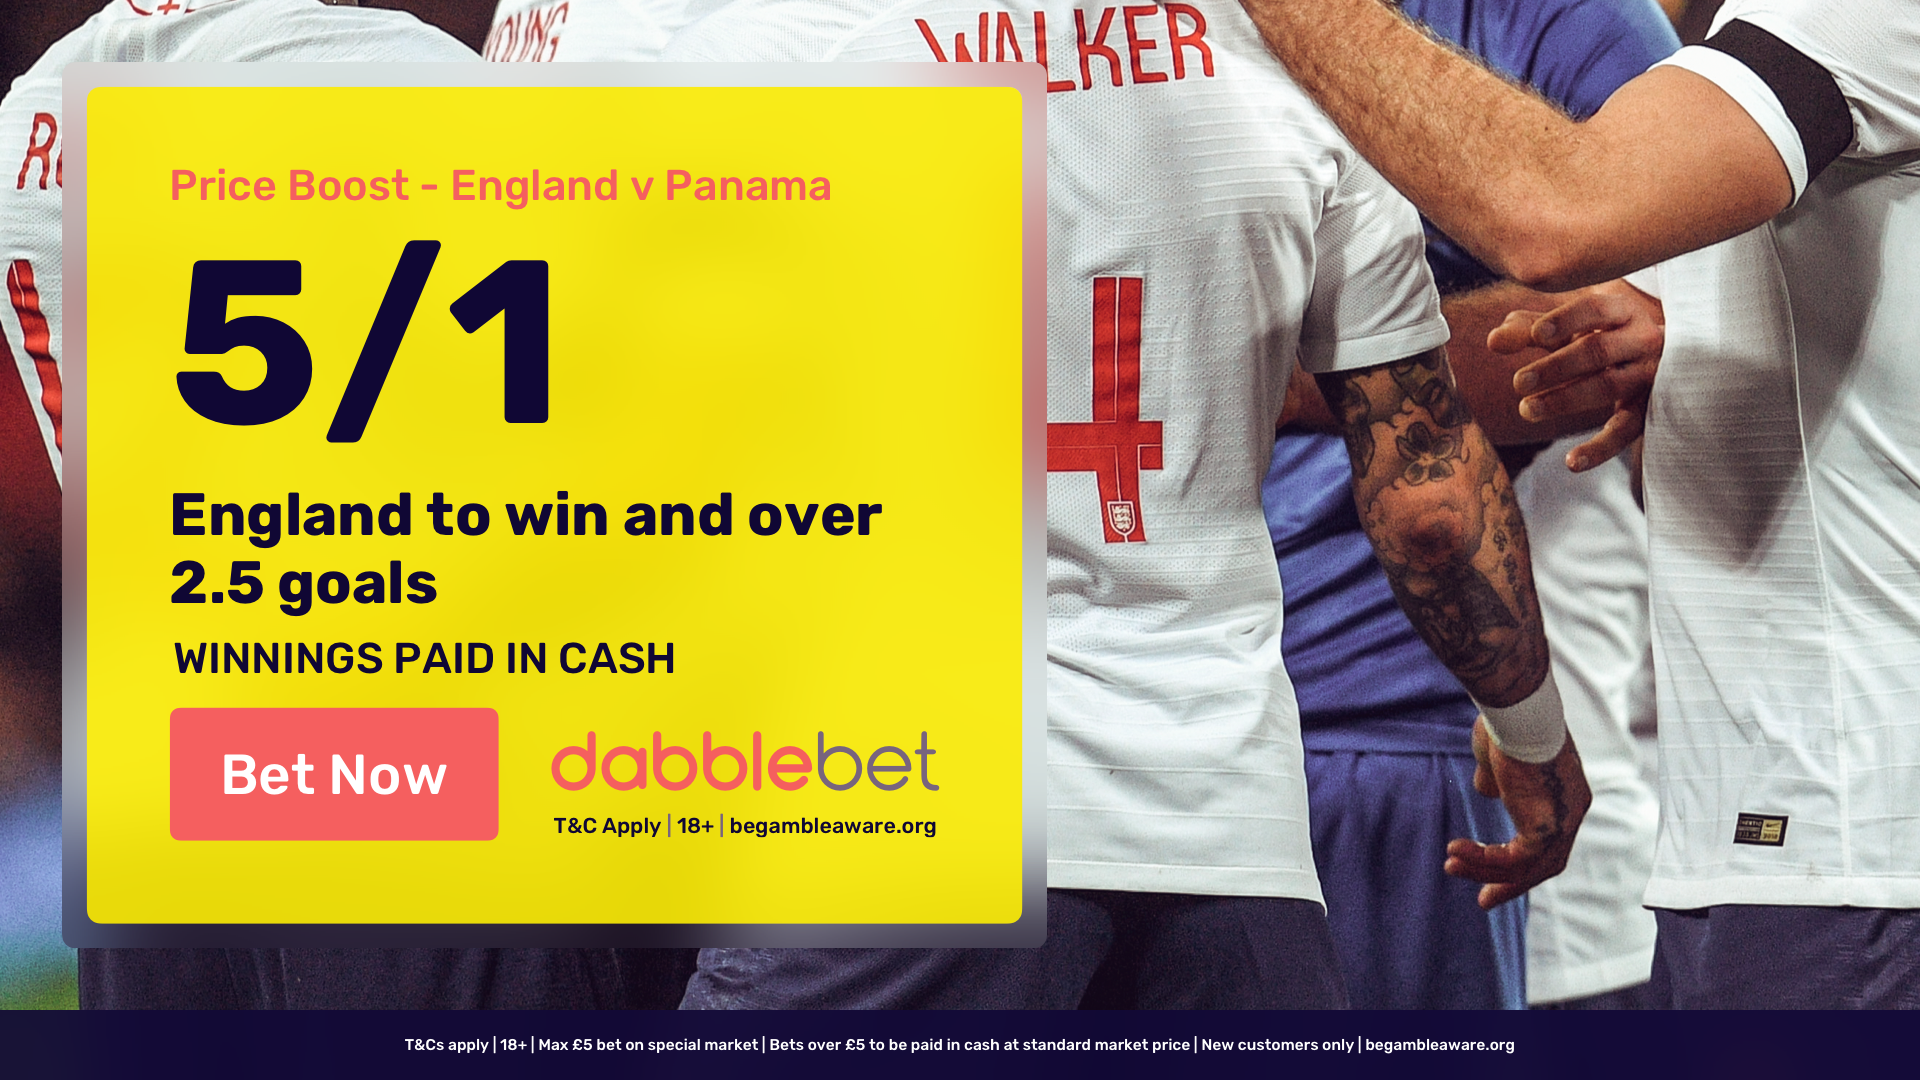 dabblebet new customer offer England v Panama